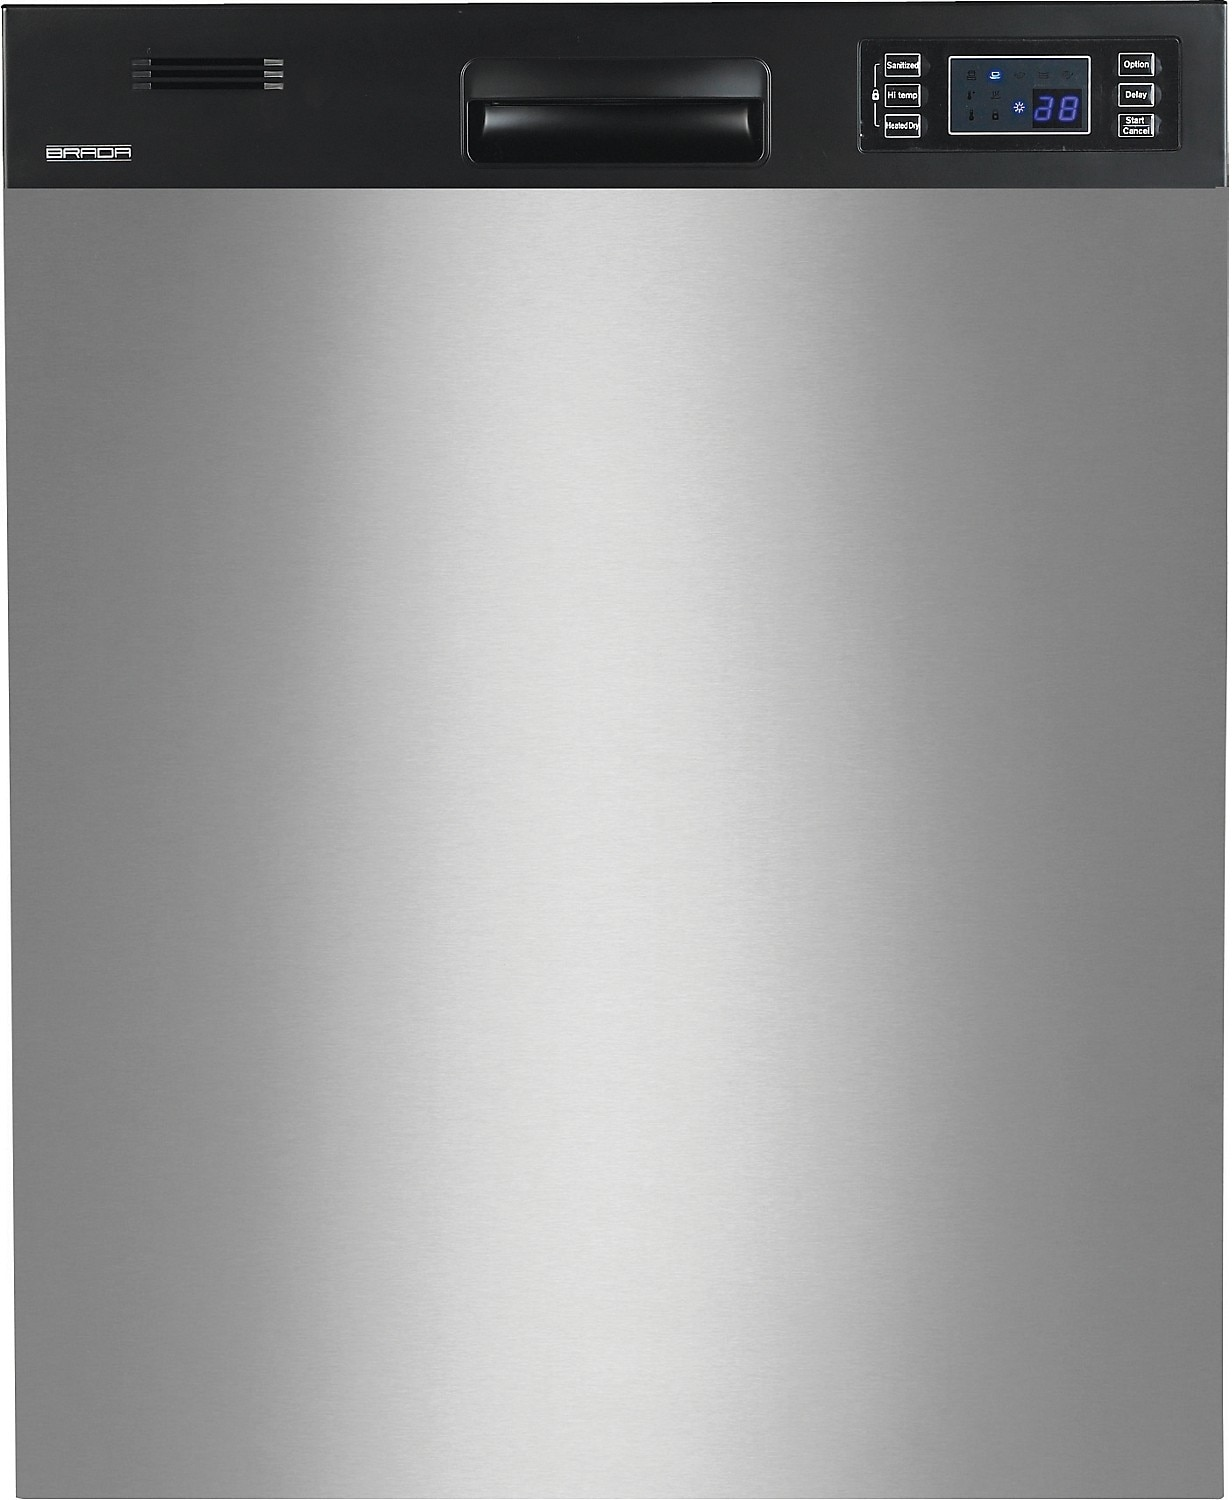 How To Clean The Inside Of A Stainless Steel Dishwasher Buzztopics Keywords Suggestions For Clean Inside Stainless